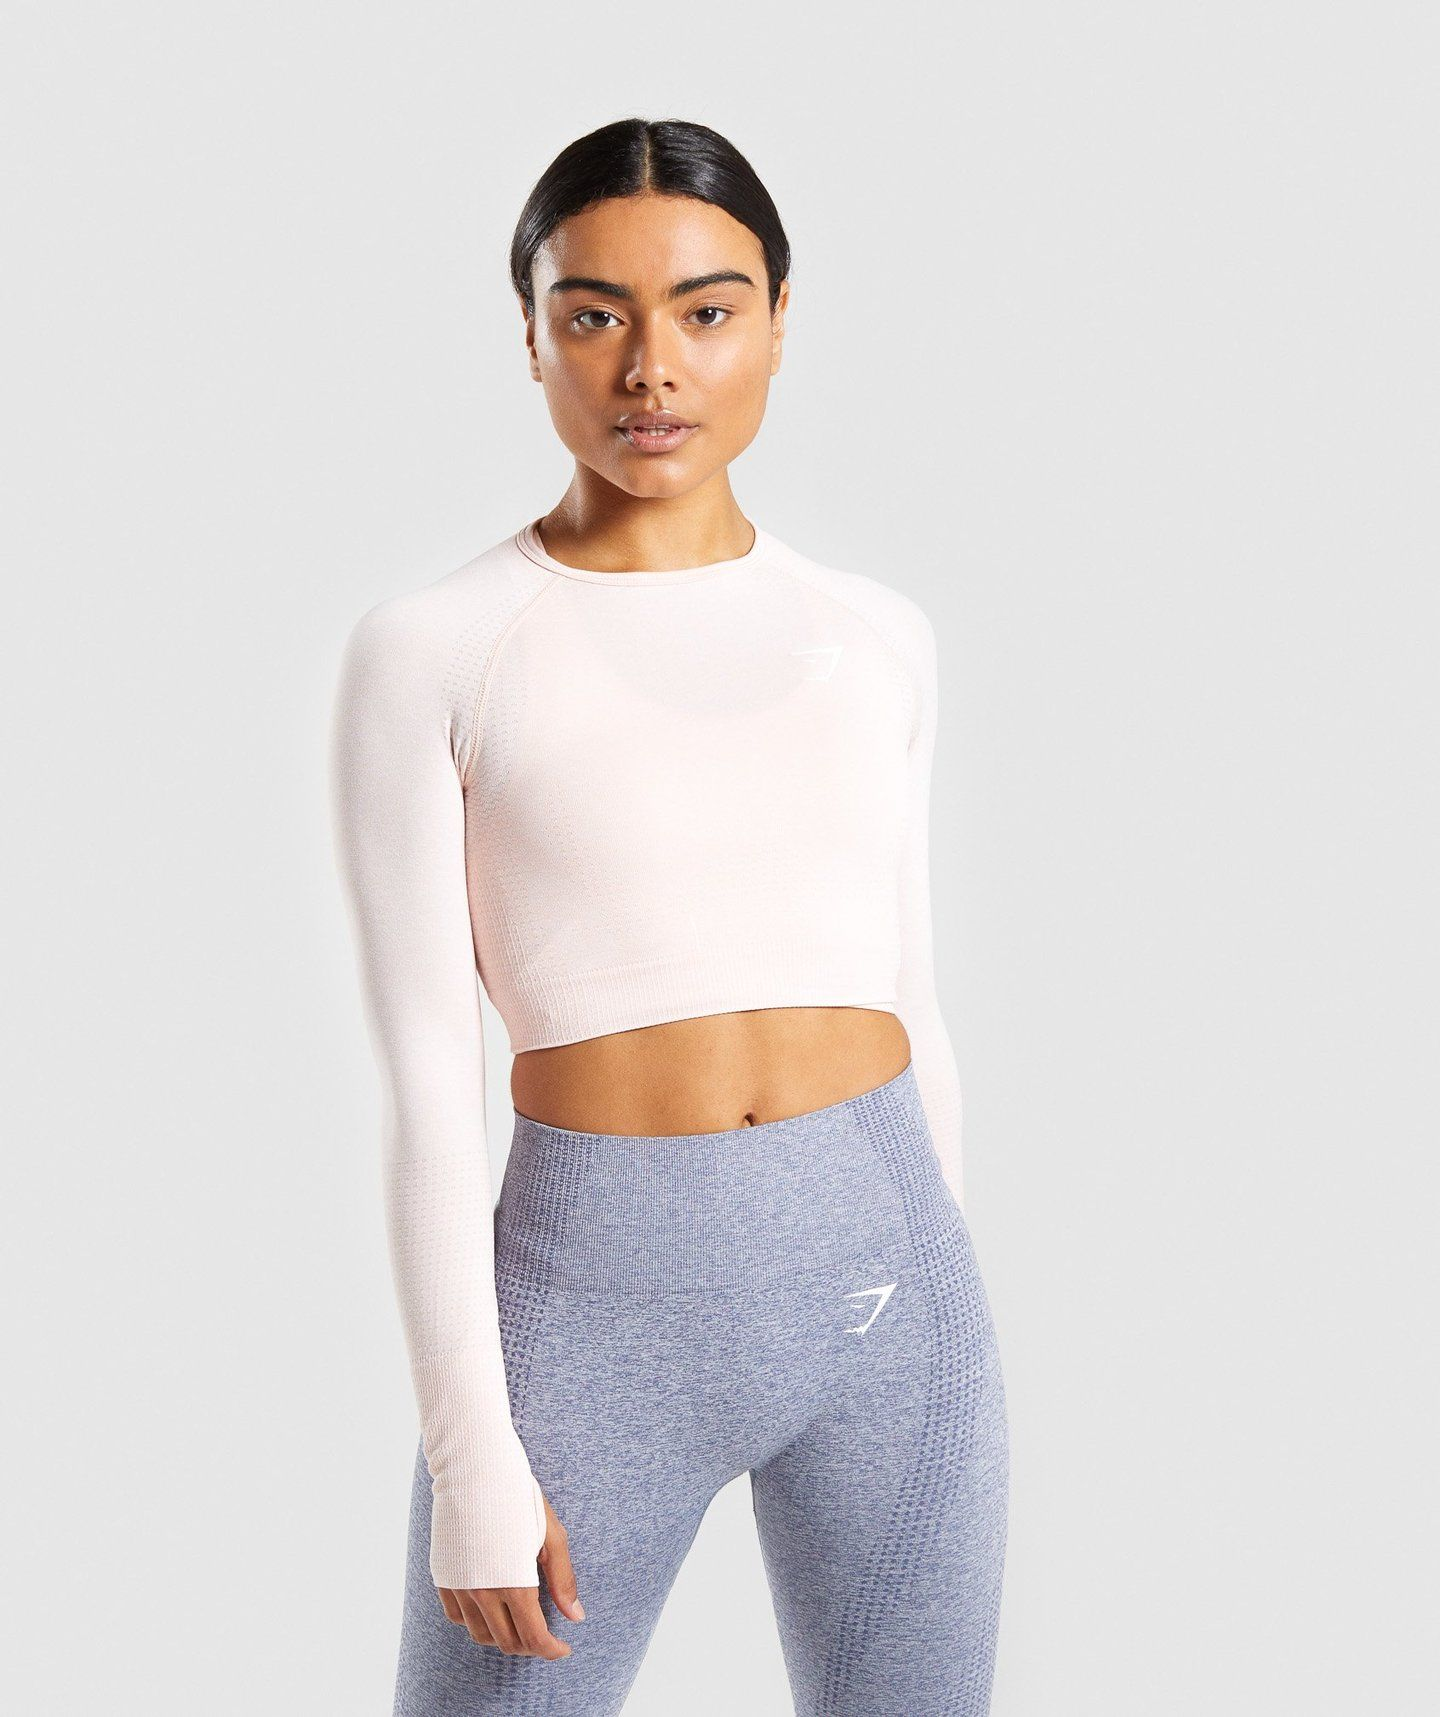 b7639da54873fa Gymshark Vital Long Sleeve Crop Top - Blush Nude Marl 4